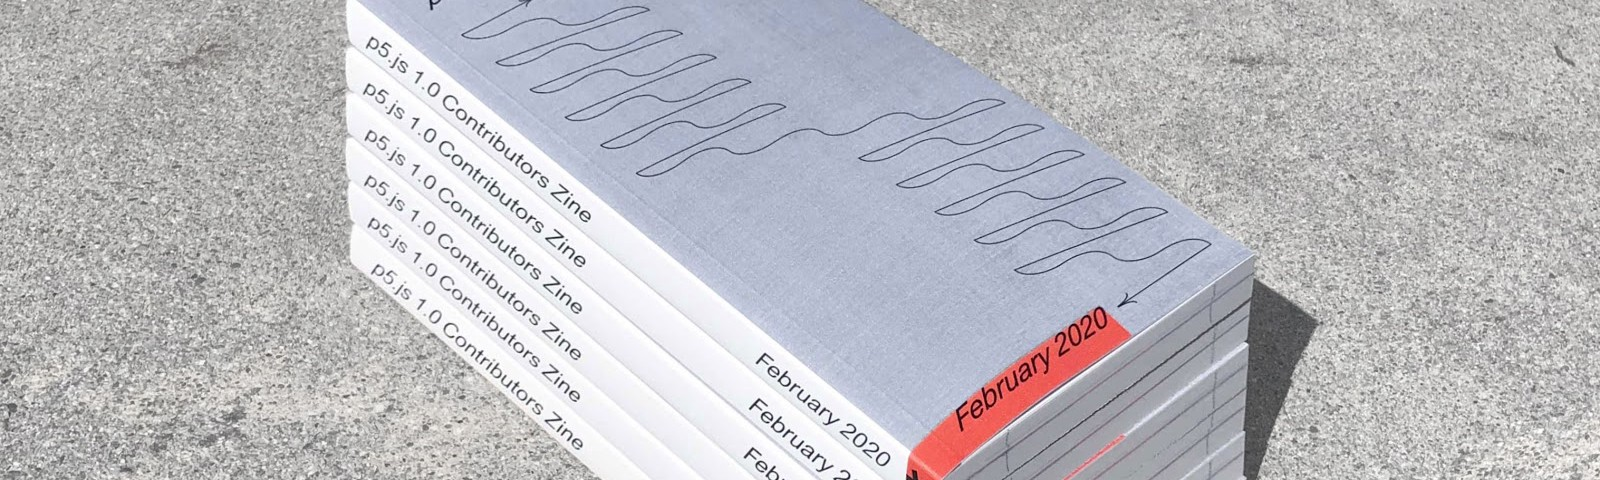 Six p5.js 1.0 contributors zines stacked on top of eachother on concrete.